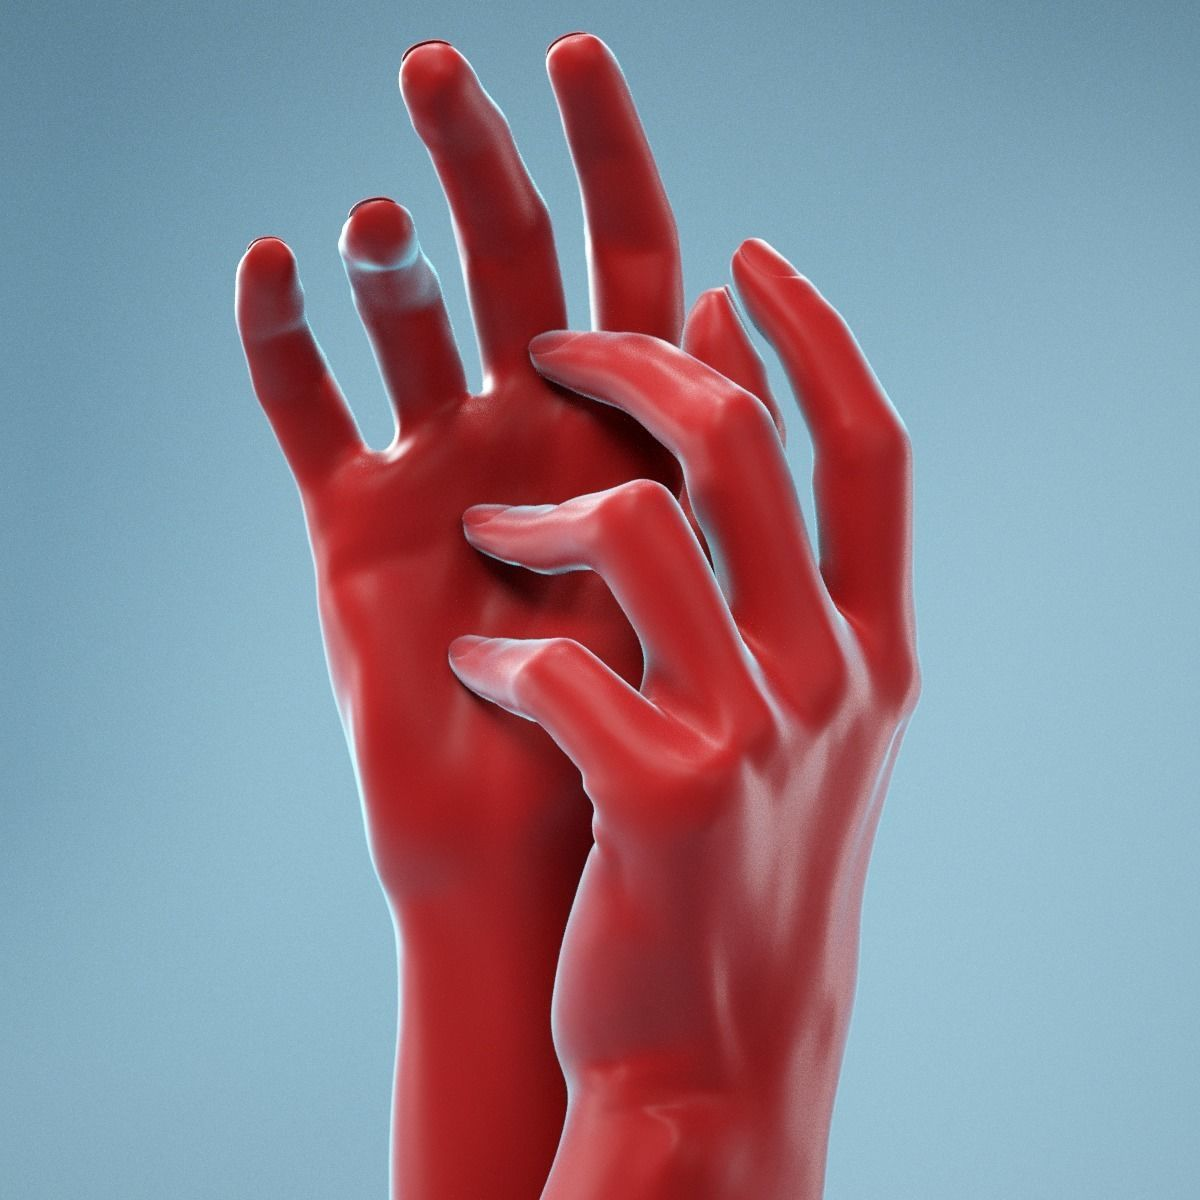 Gently Touching Realistic Hands Model 19